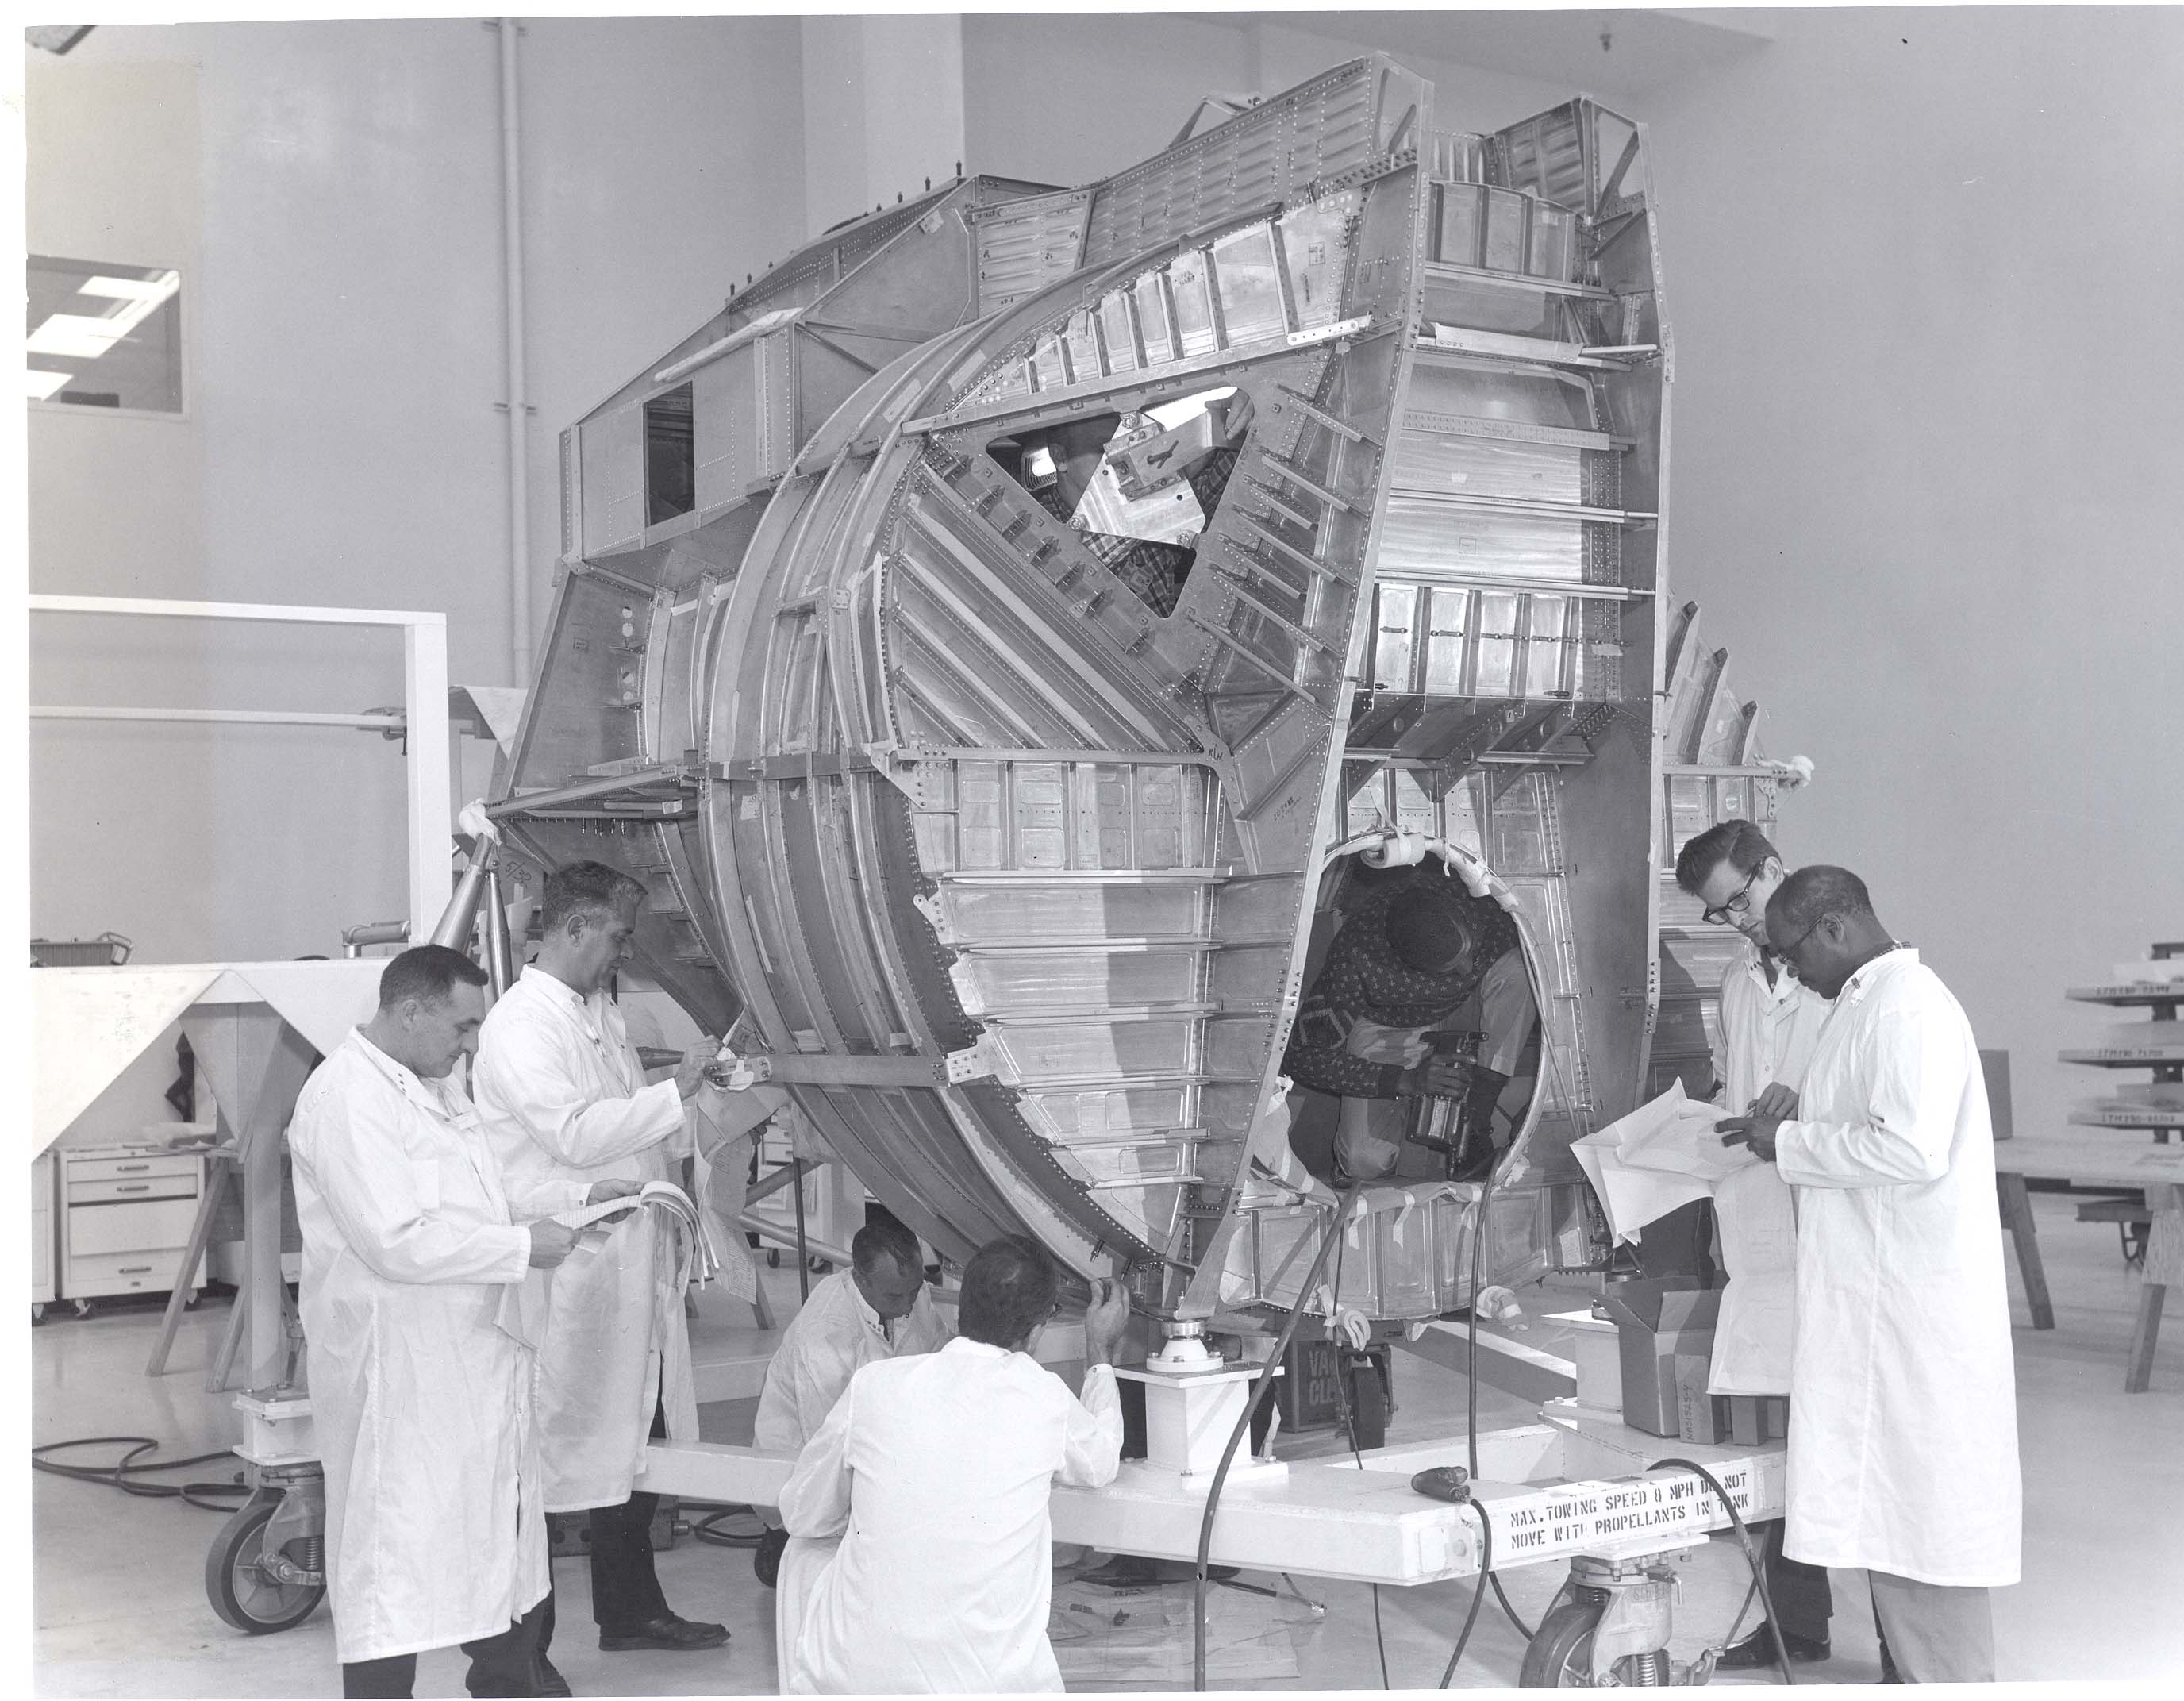 Grumman Technicians Working on the Lunar Module in Bethpage, Long Island, New York